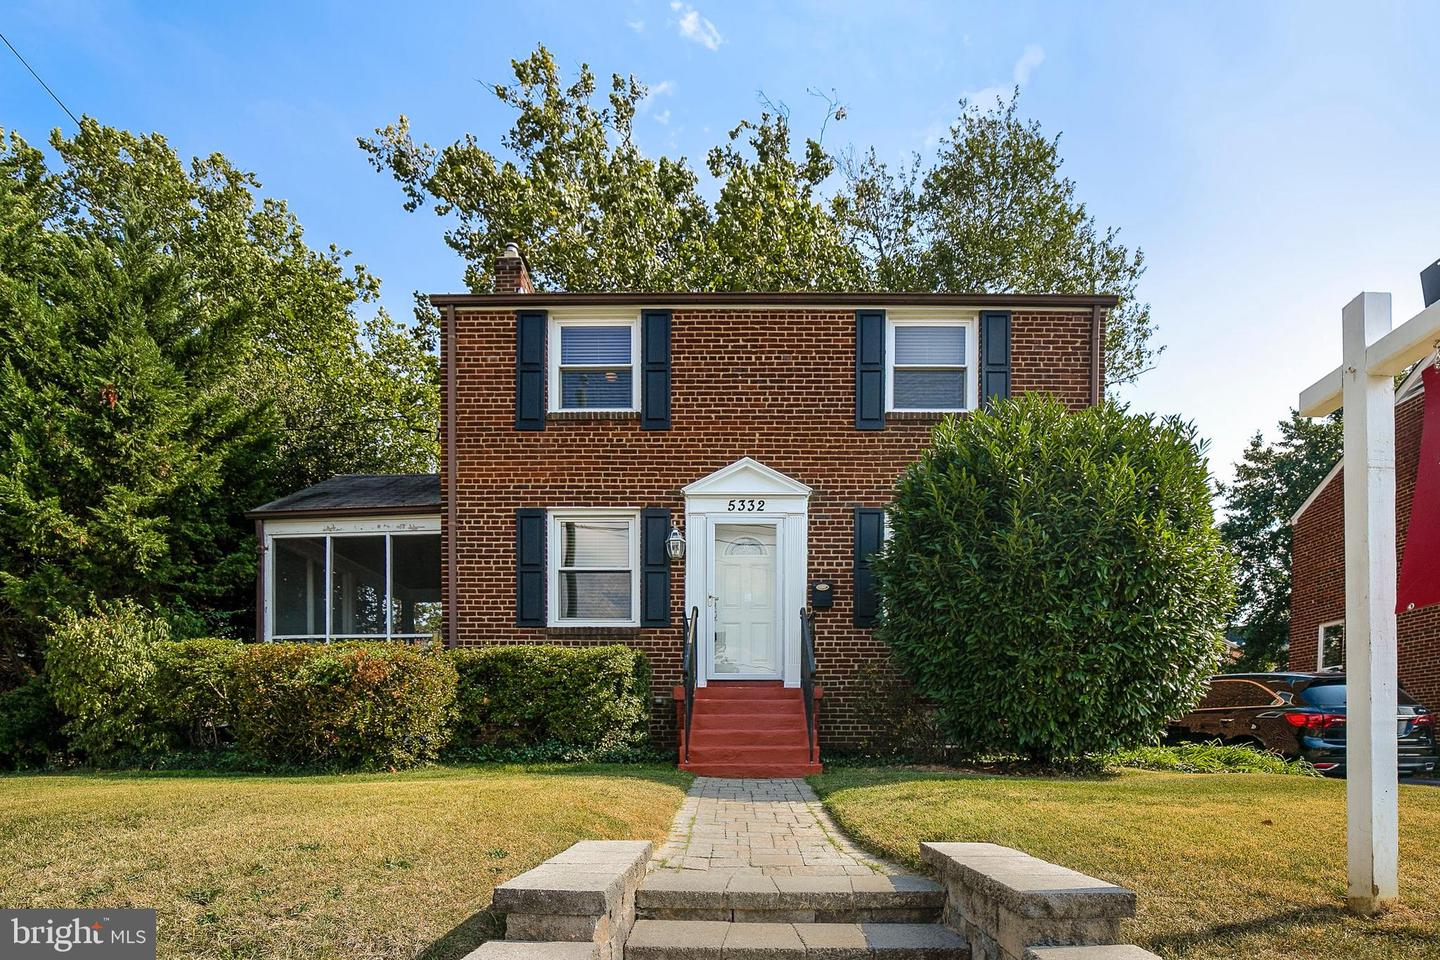 5332 Carlin Springs, Arlington, VA, 22203